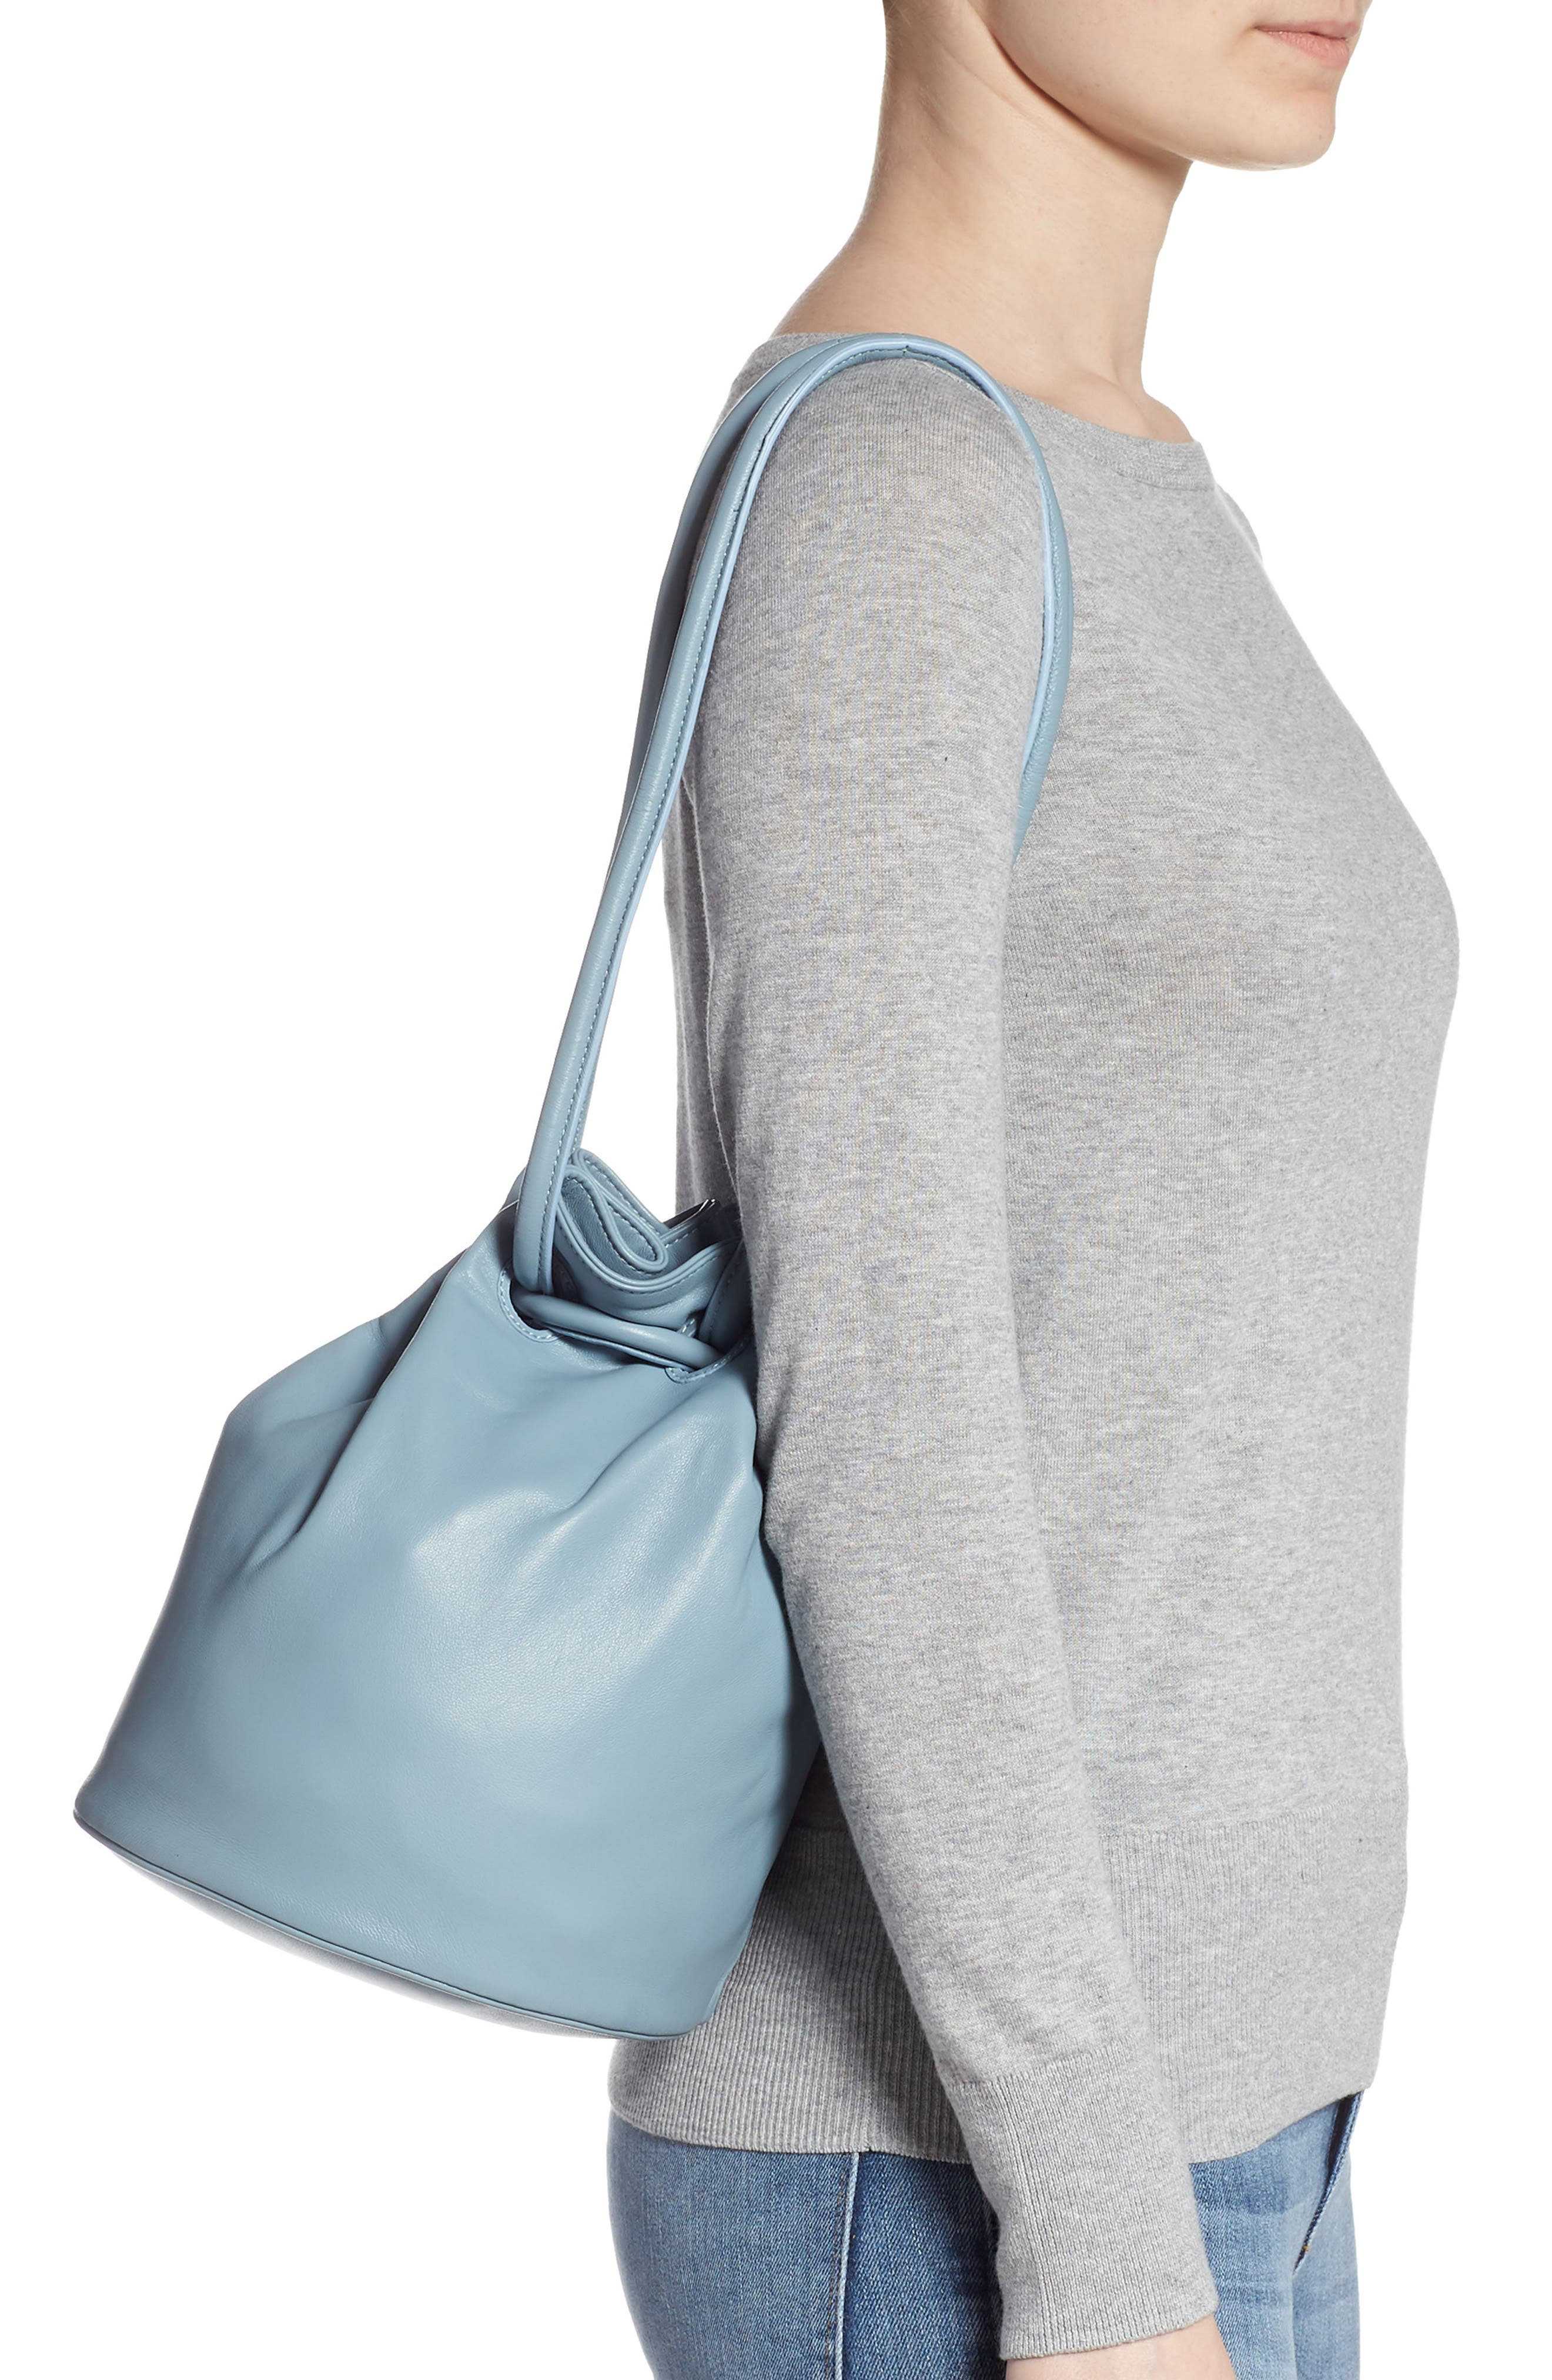 Lambskin Leather Drawstring Pouch,                             Alternate thumbnail 2, color,                             GREY BLUE